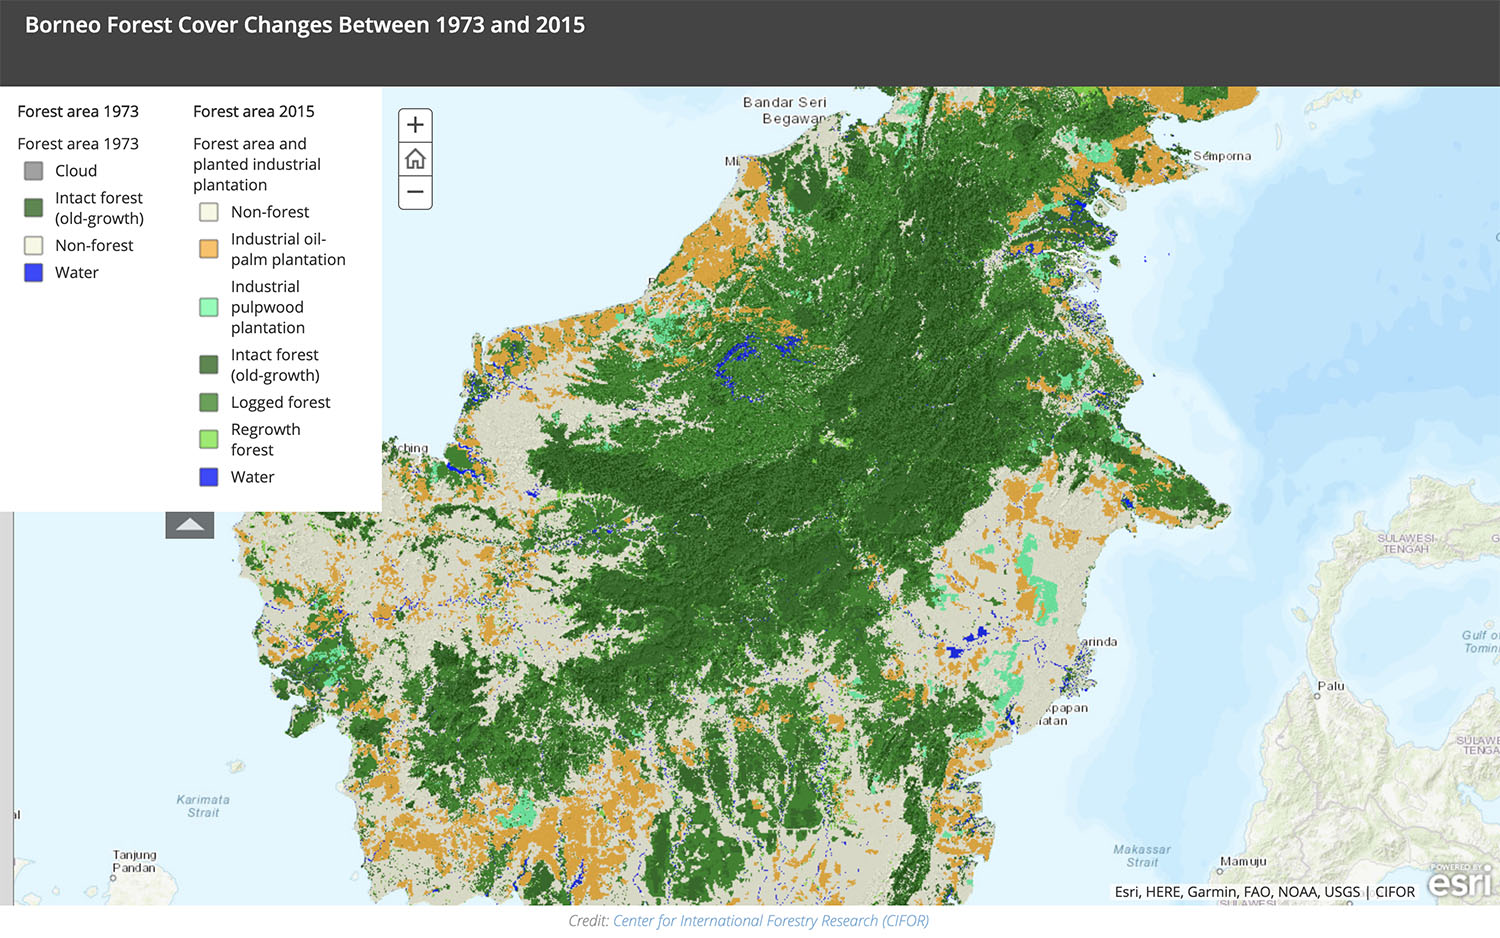 TNC's map showing forest loss in Borneo. Presented on Esri's ARCGIS story map platform.